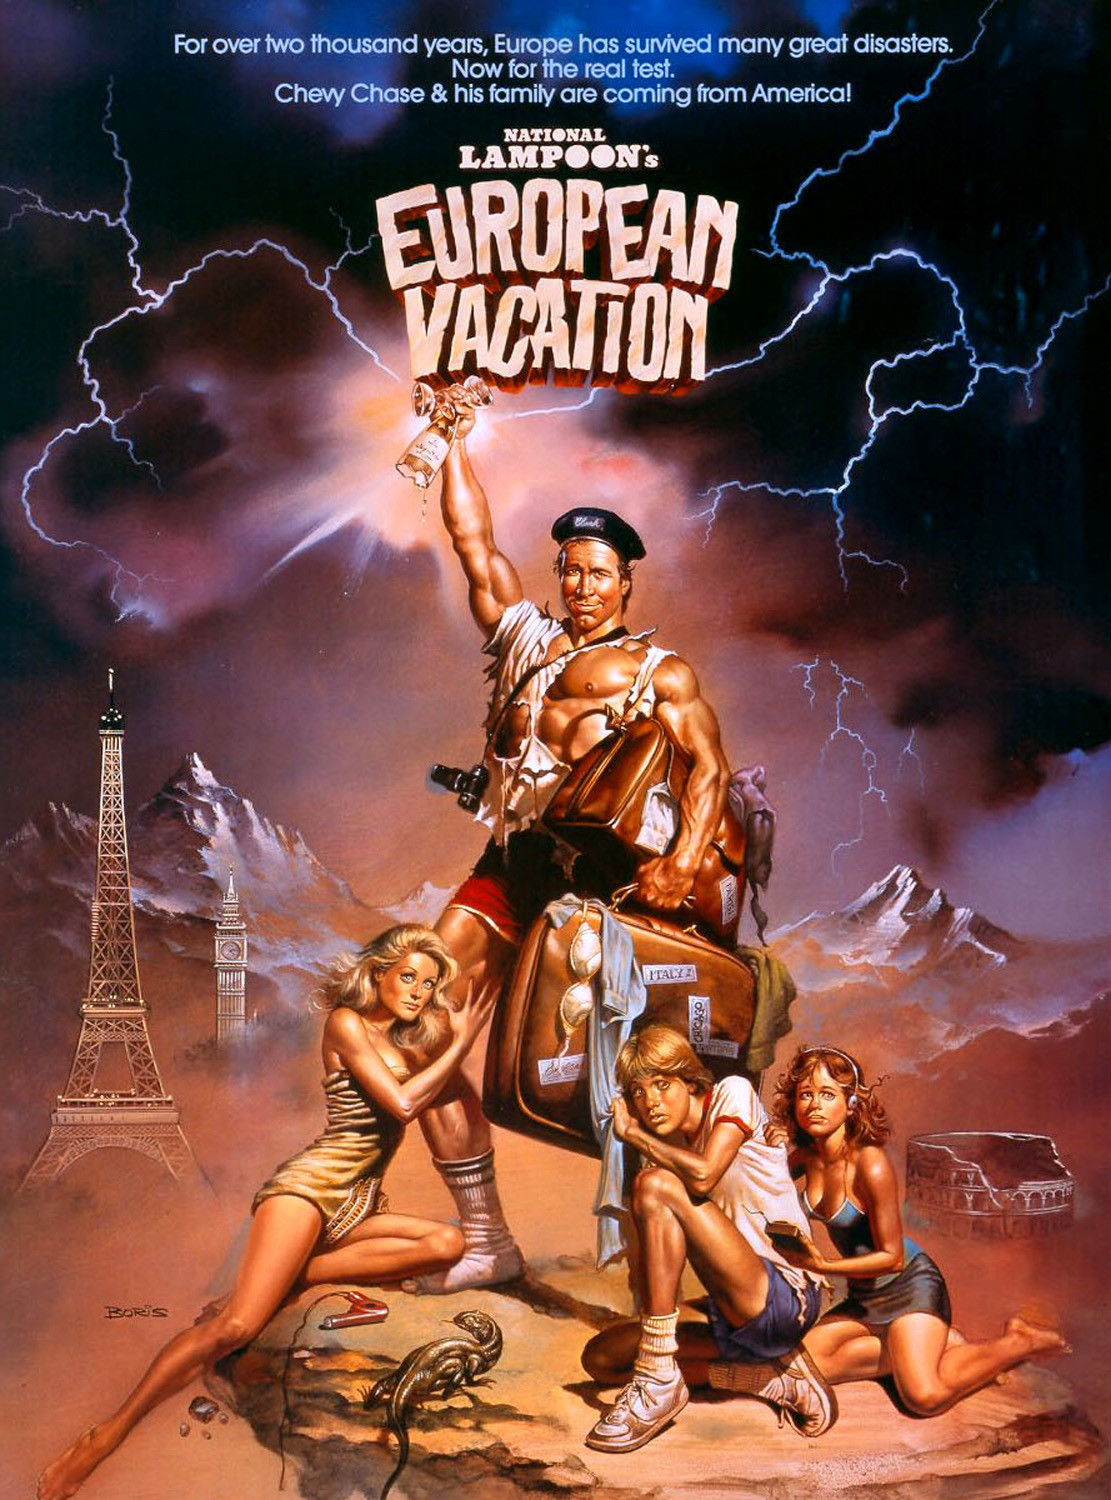 September 27th 2012 National Lampoons European Vacation